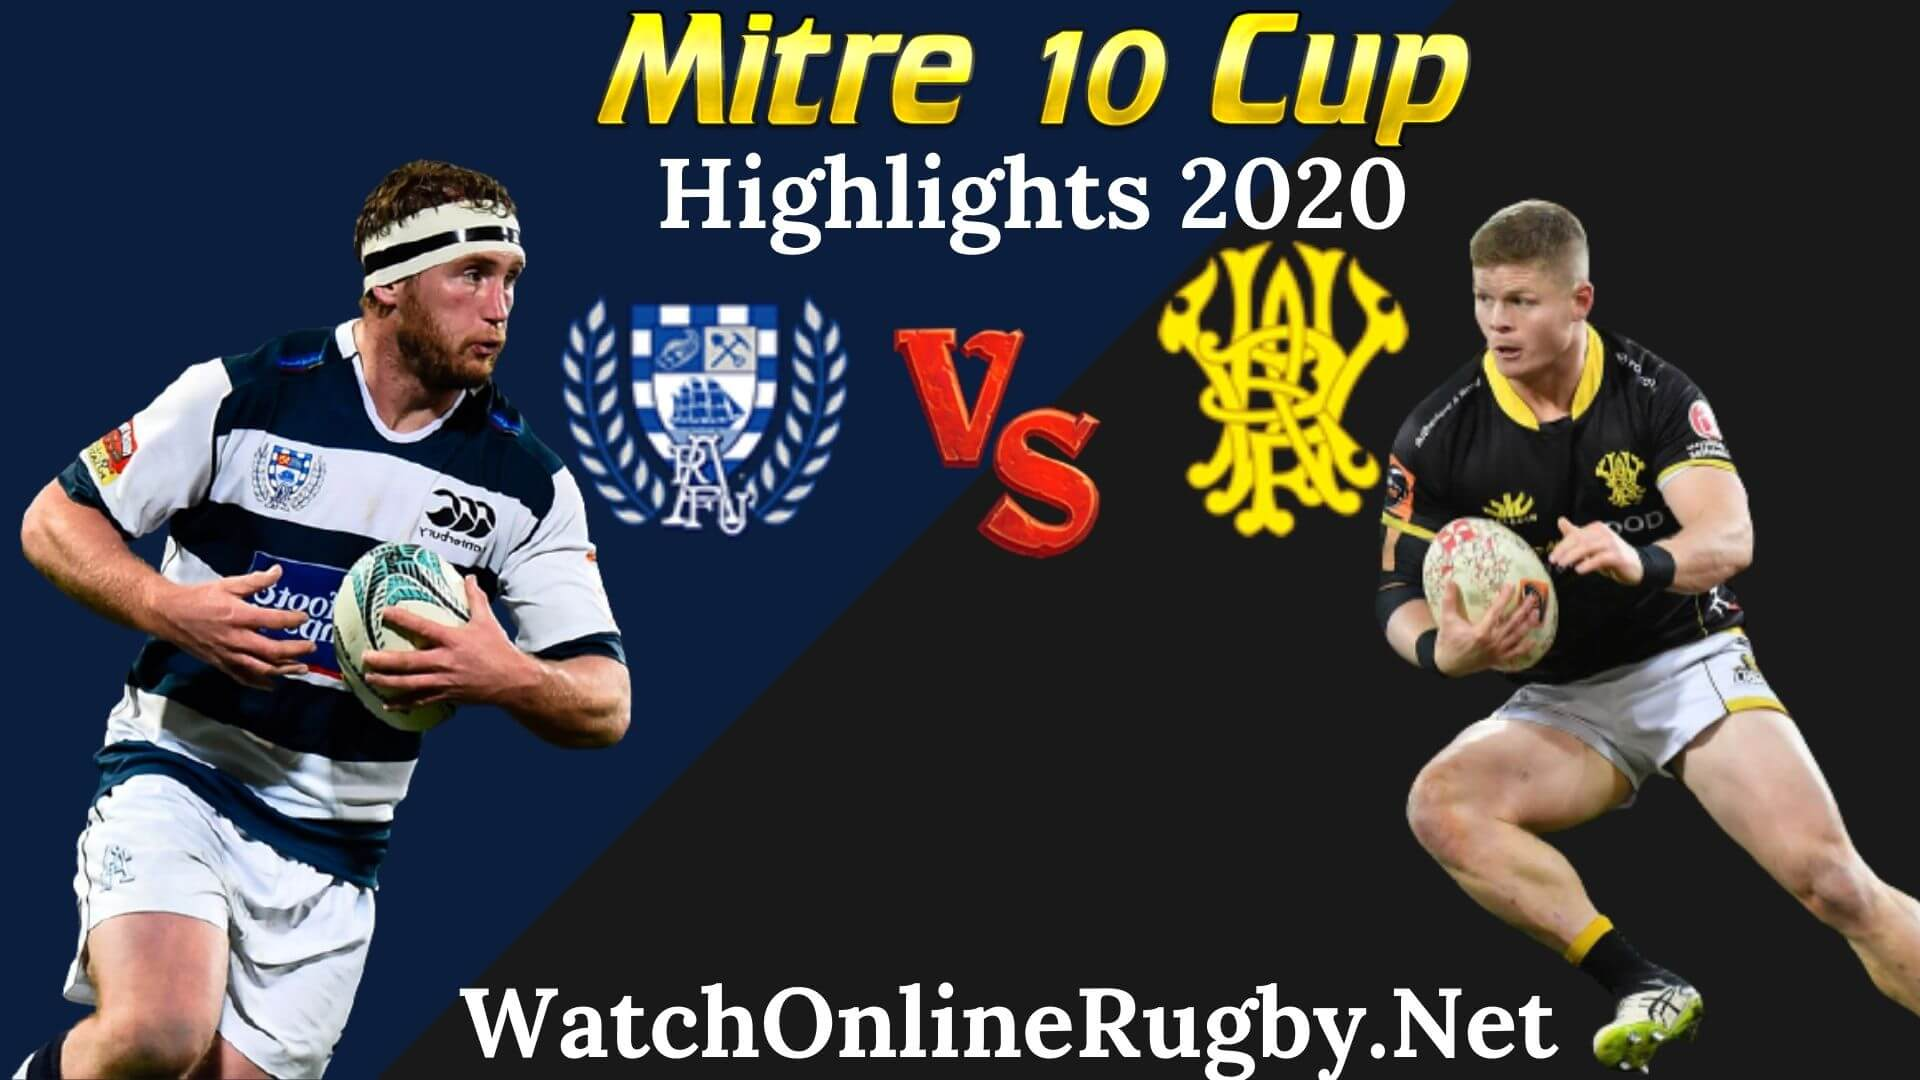 Auckland vs Wellington RD 2 Highlights 2020 M10 Cup